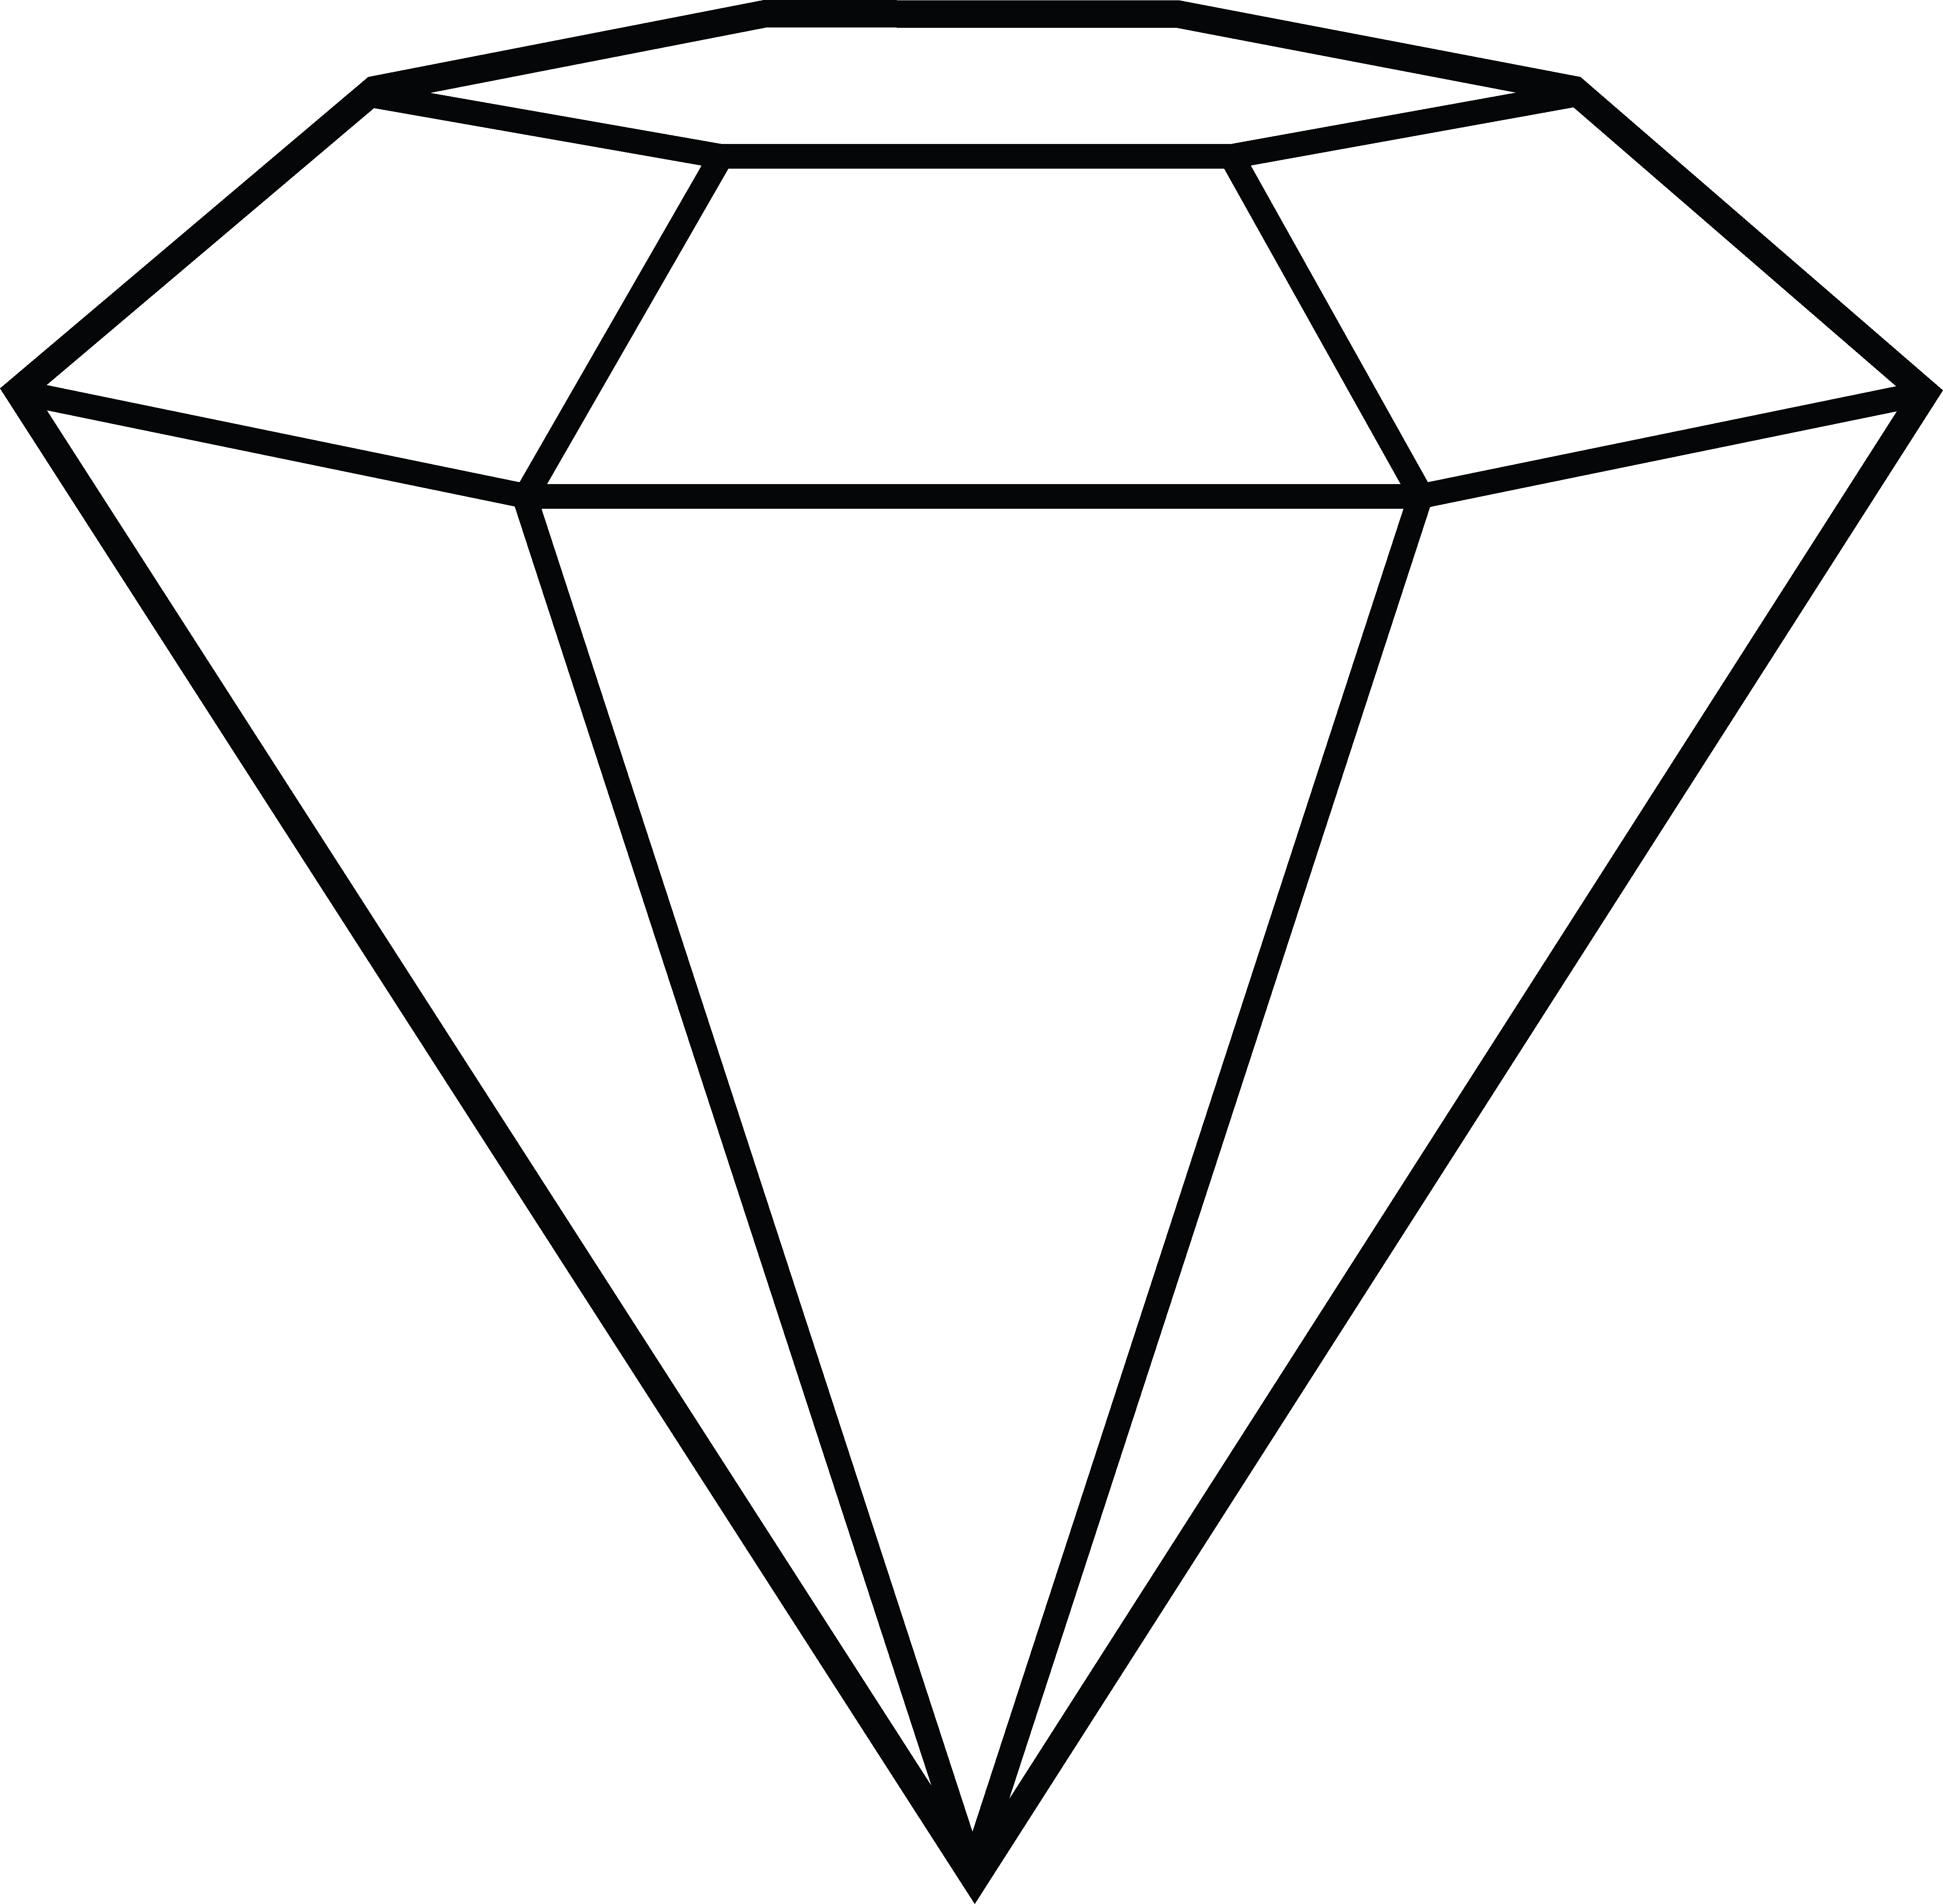 Gems vector black and white. Diamond lineart graphic design black and white stock